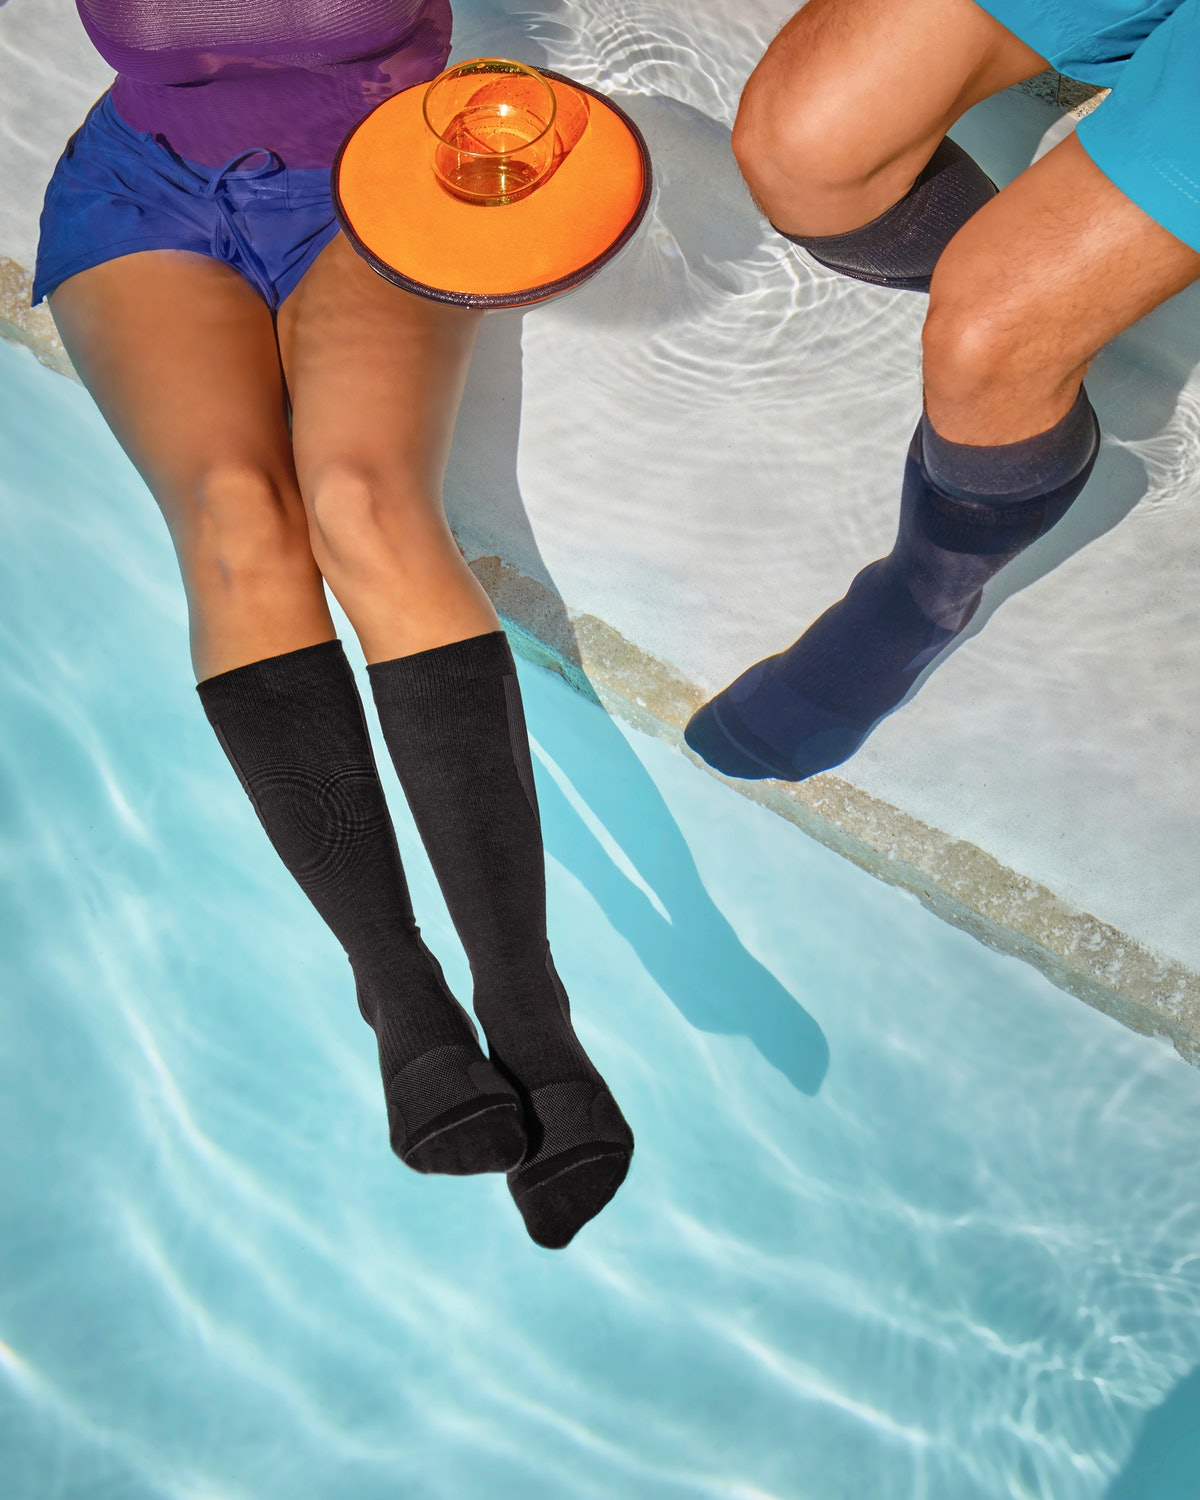 A young couple sits near a pool while wearing compression socks from Away's Travel Well collection.